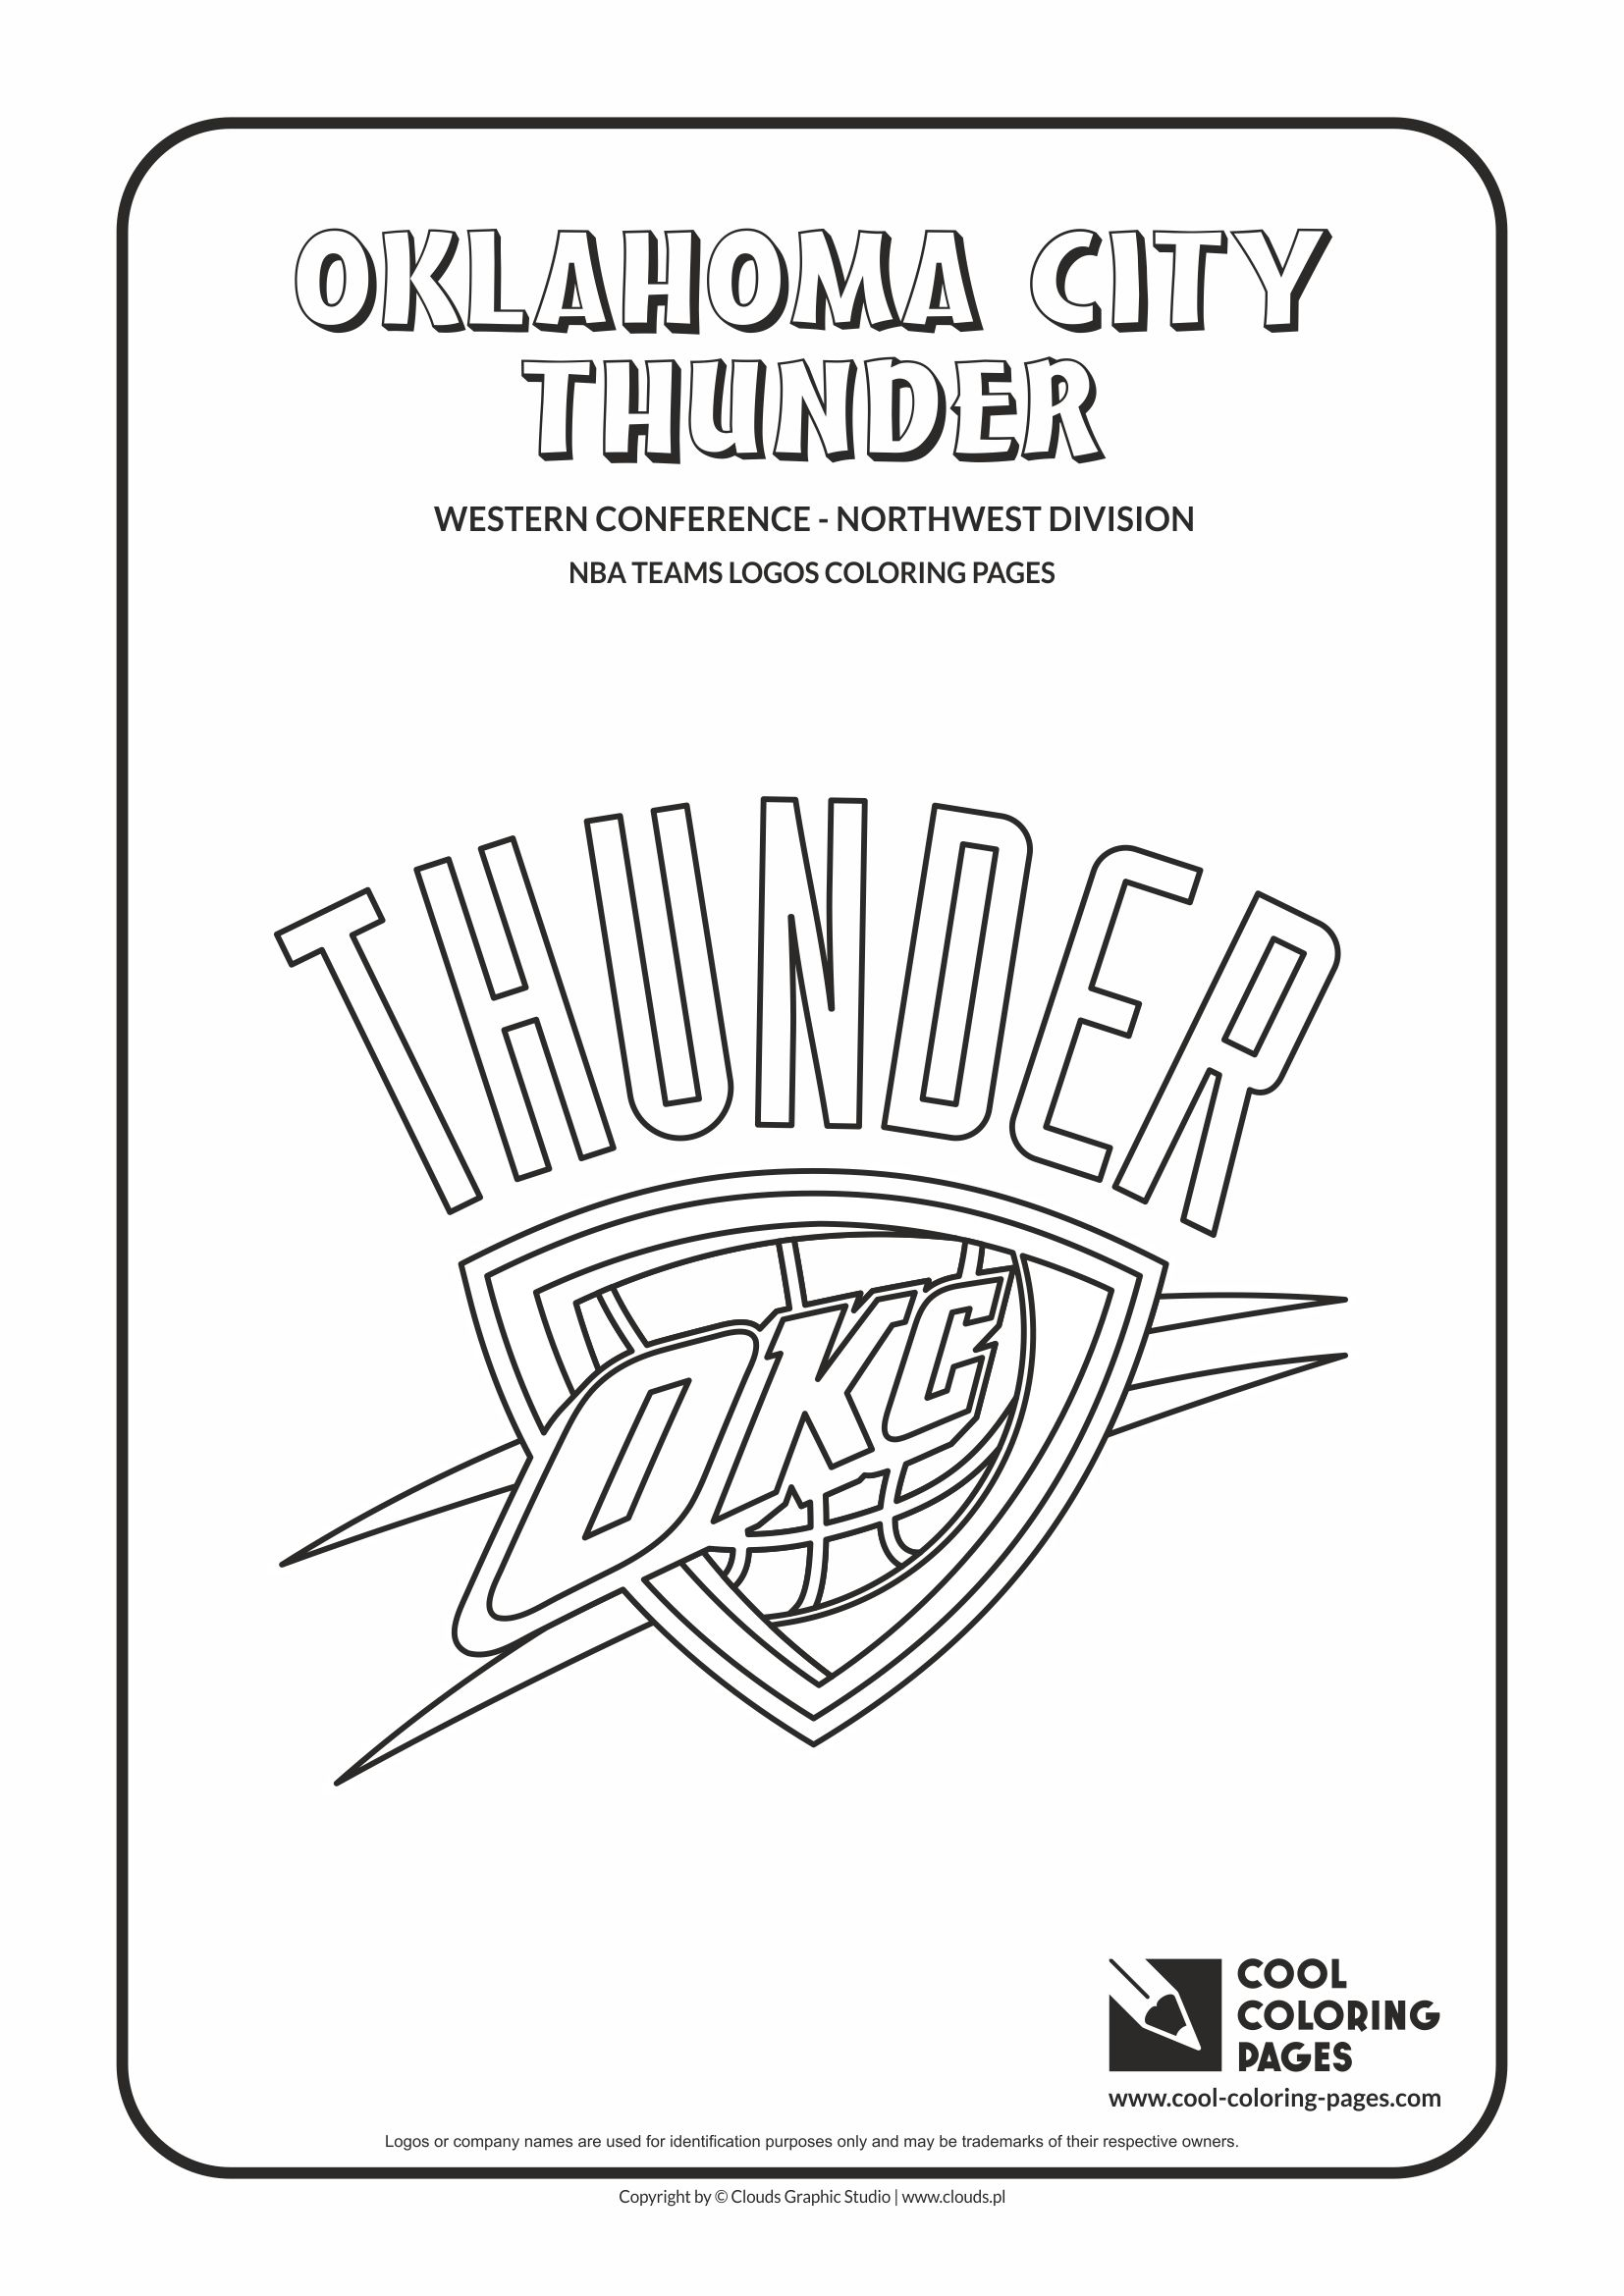 Cool Coloring Pages Oklahoma City Thunder - NBA basketball teams ...